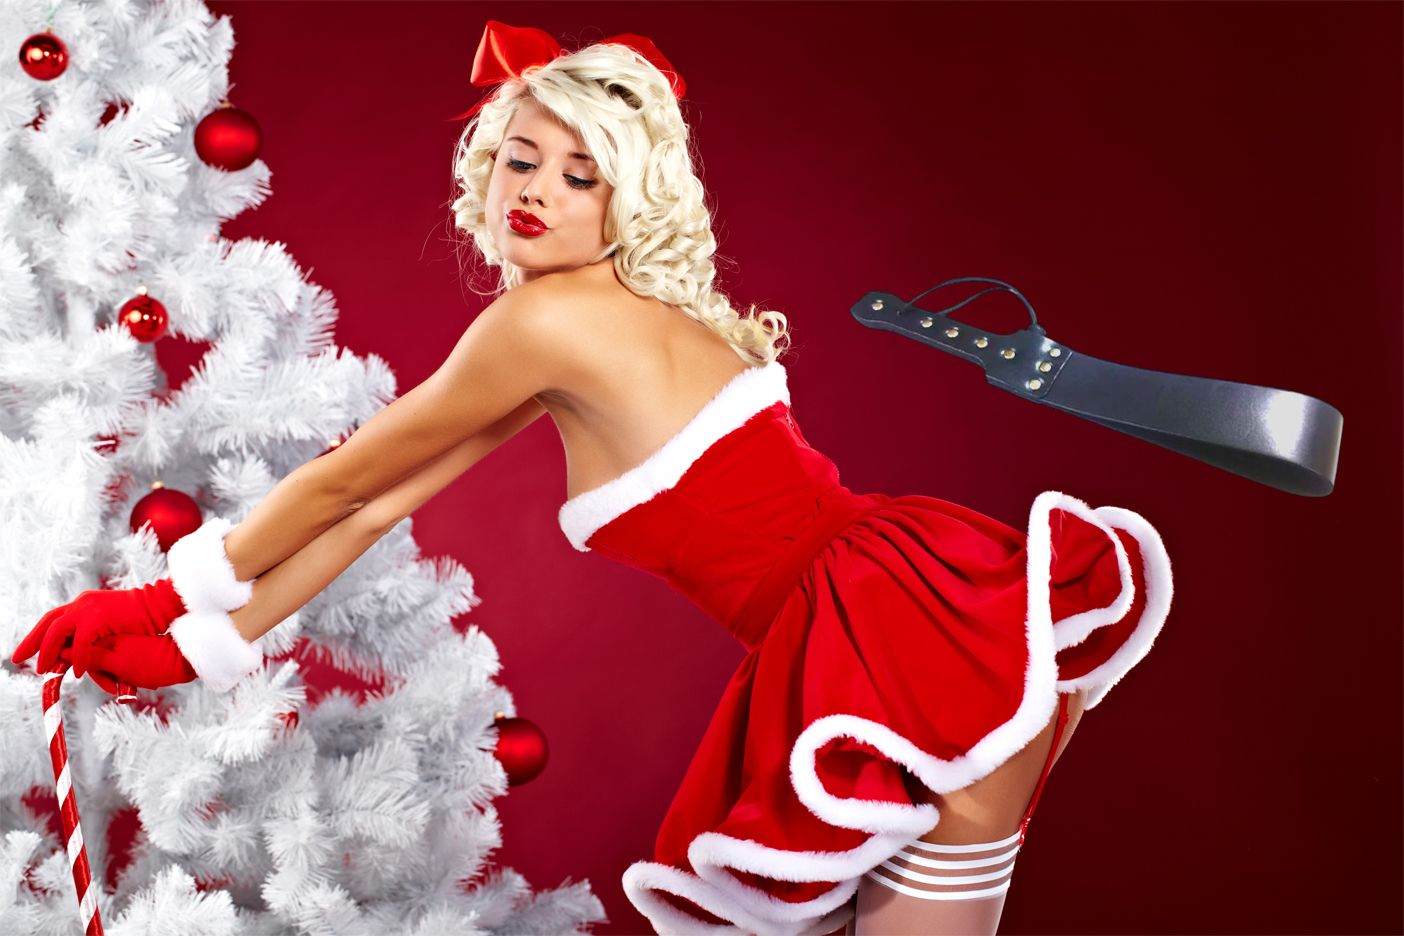 Sexy Mrs Claus by white Christmas tree, waiting to be spanked